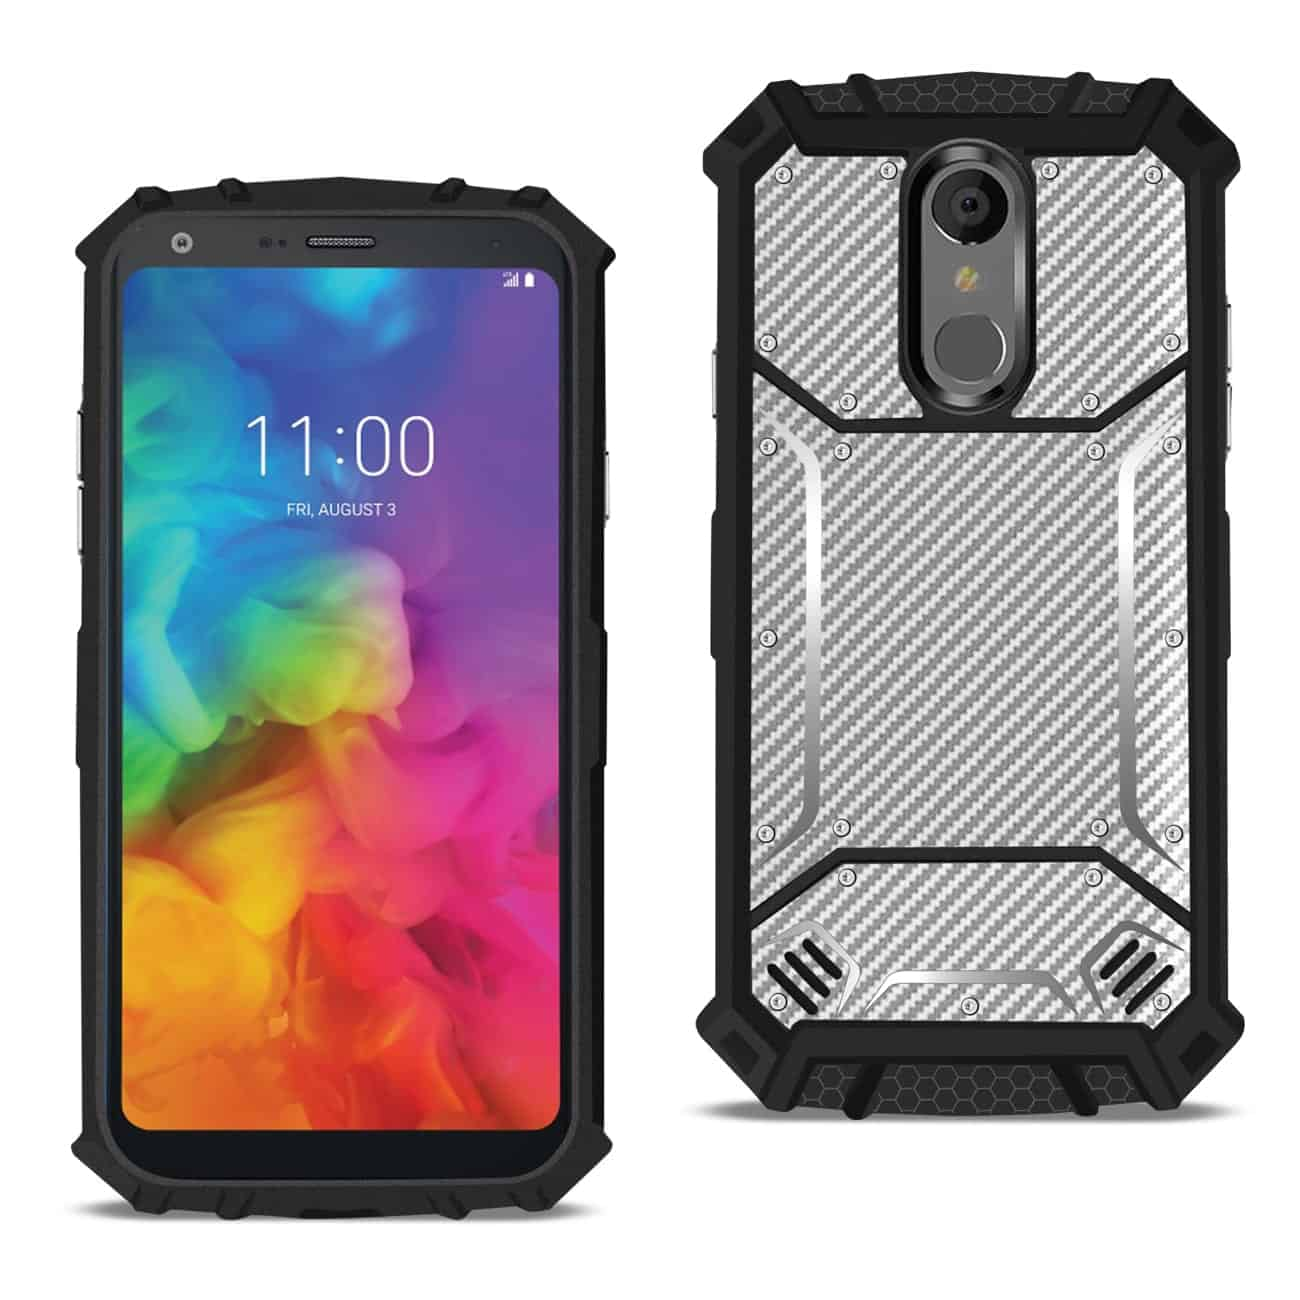 LG Q7 PLUS_Carbon Fiber Hard-shell Case In Gray